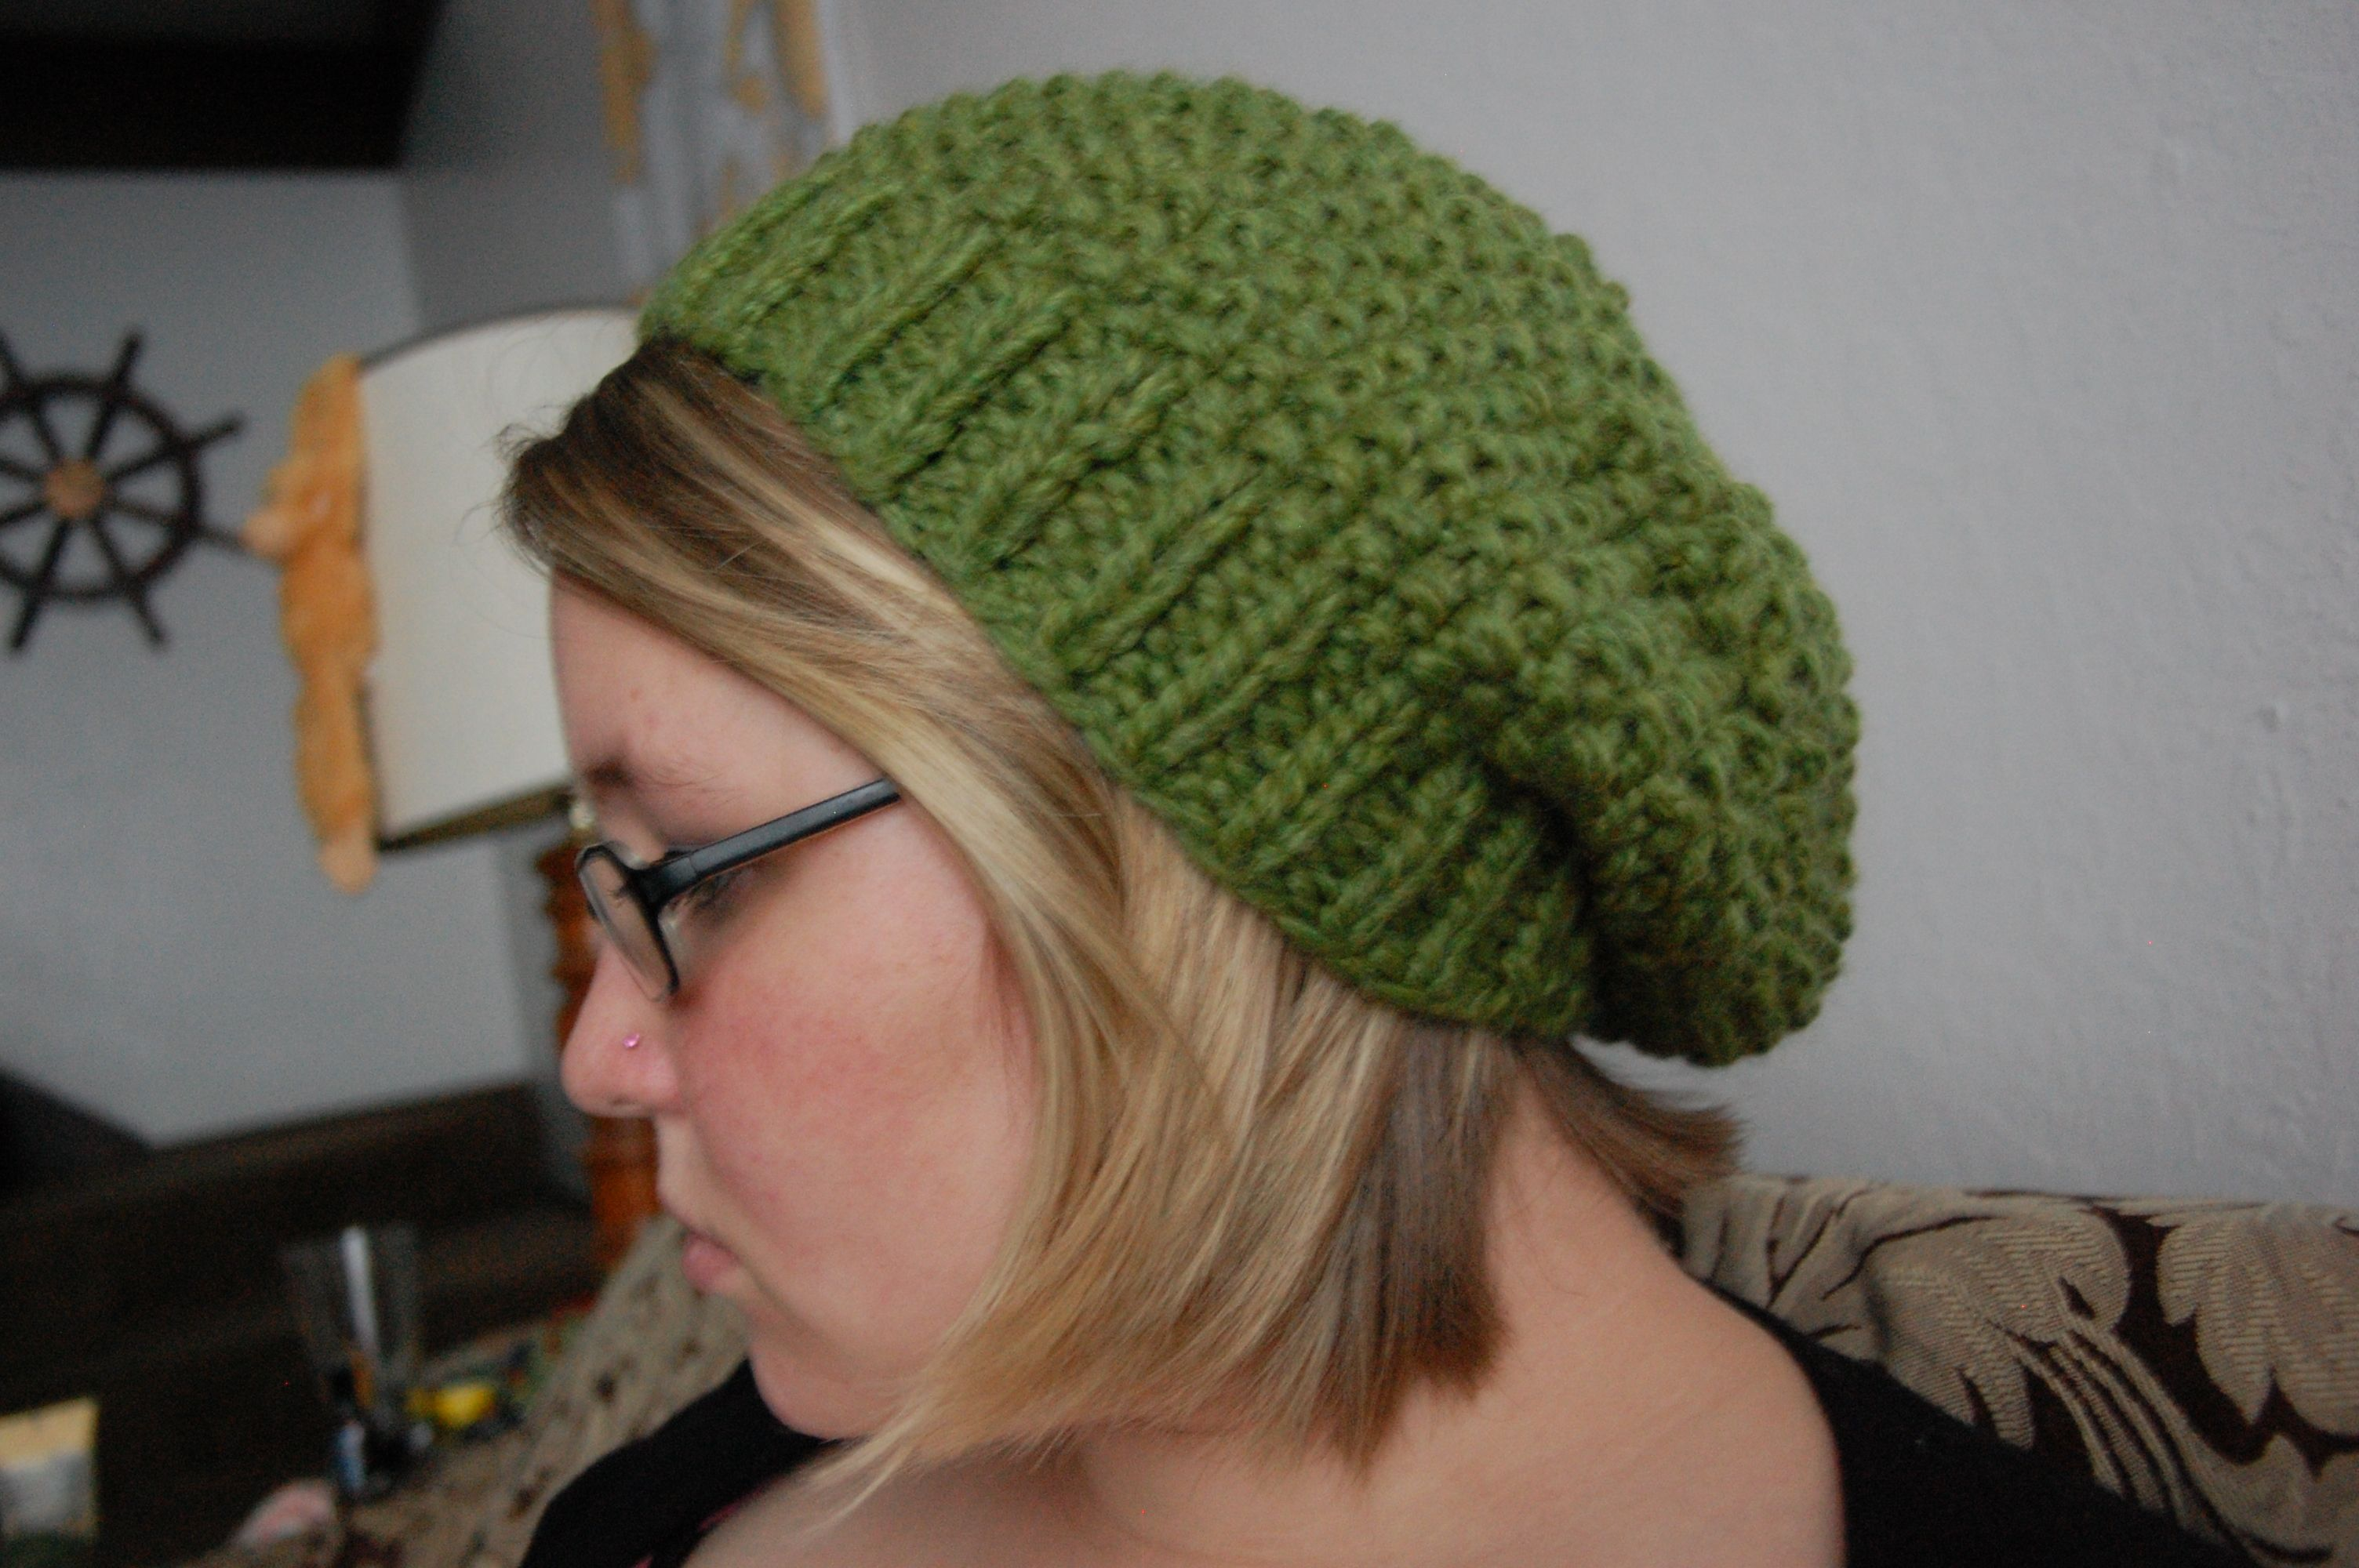 I finished my Lemon Grass Slouchy Hat sooner than I thought I would ...